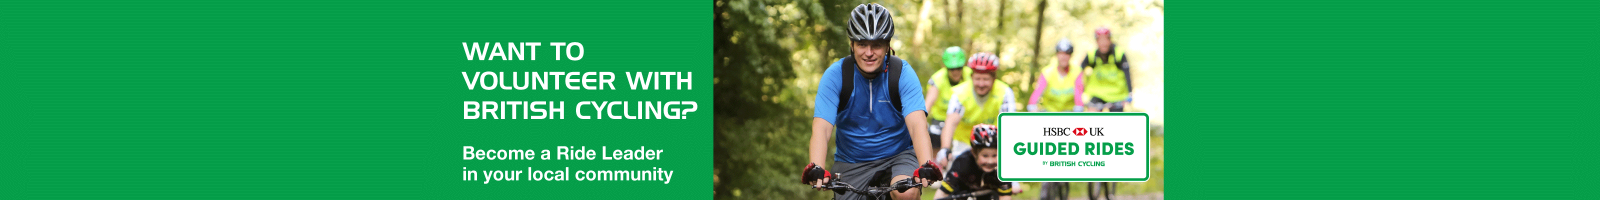 Become a British Cycling Ride Leader